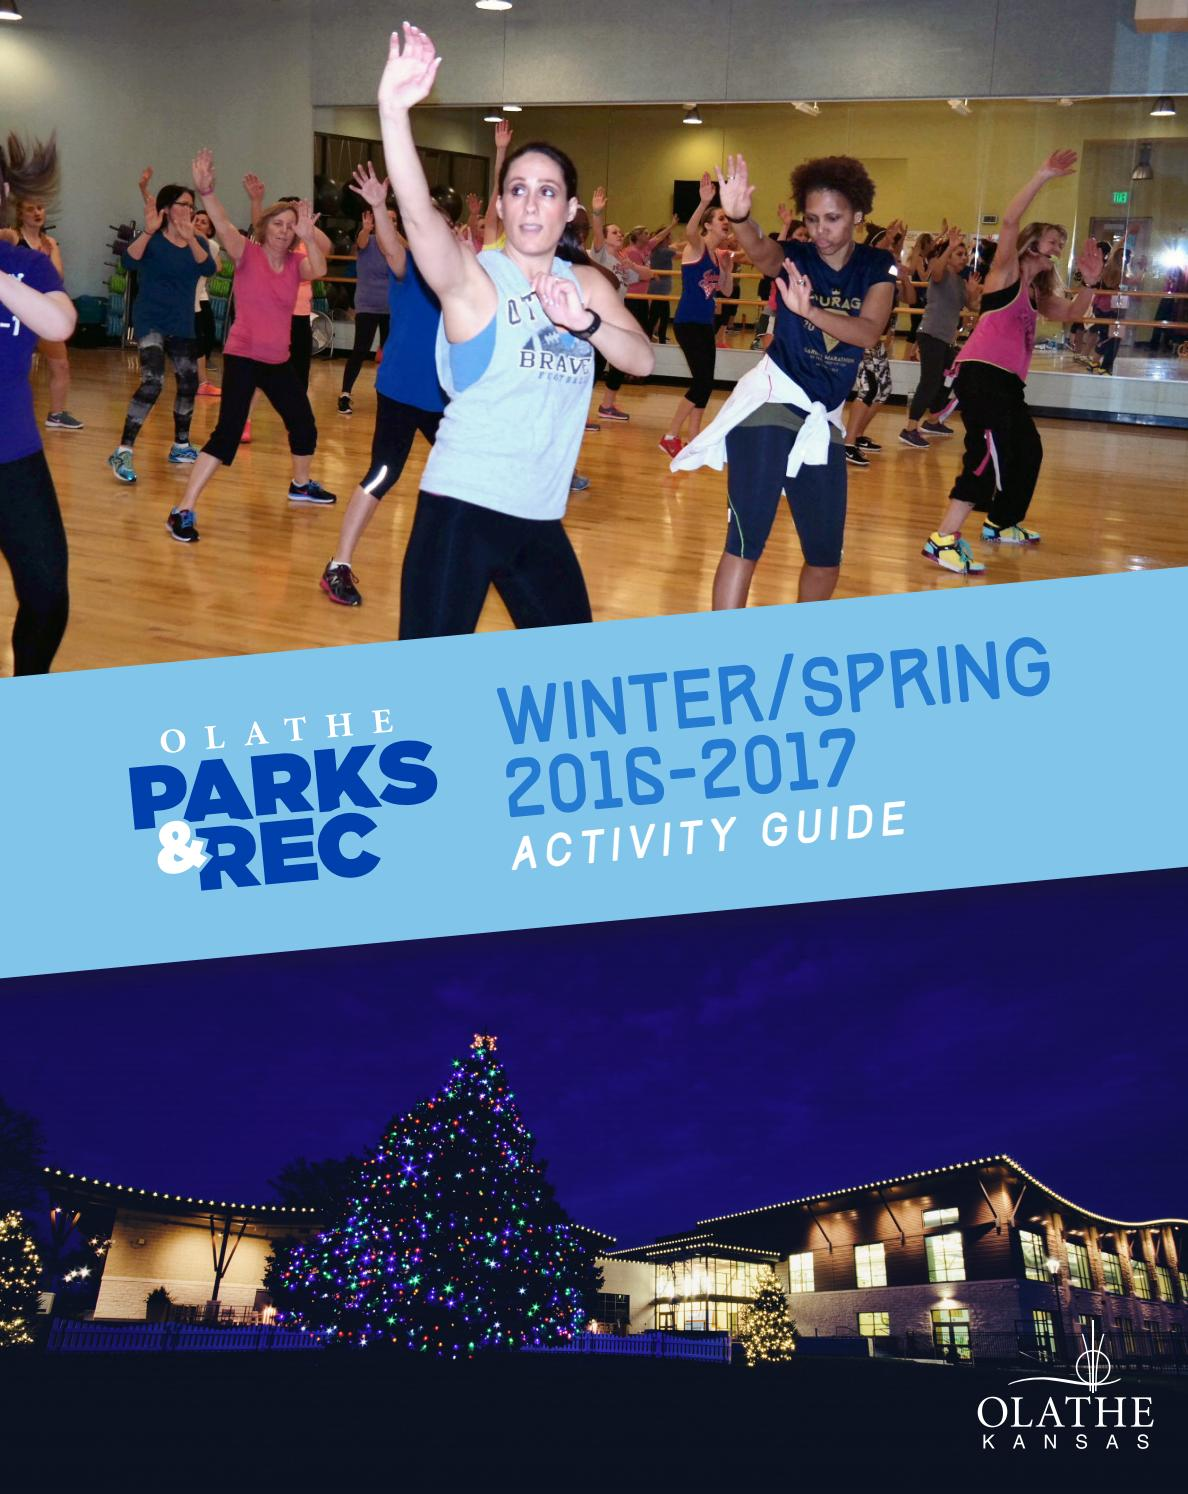 olathe parks u0026 rec winter spring 2016 17 activity guide by olathe